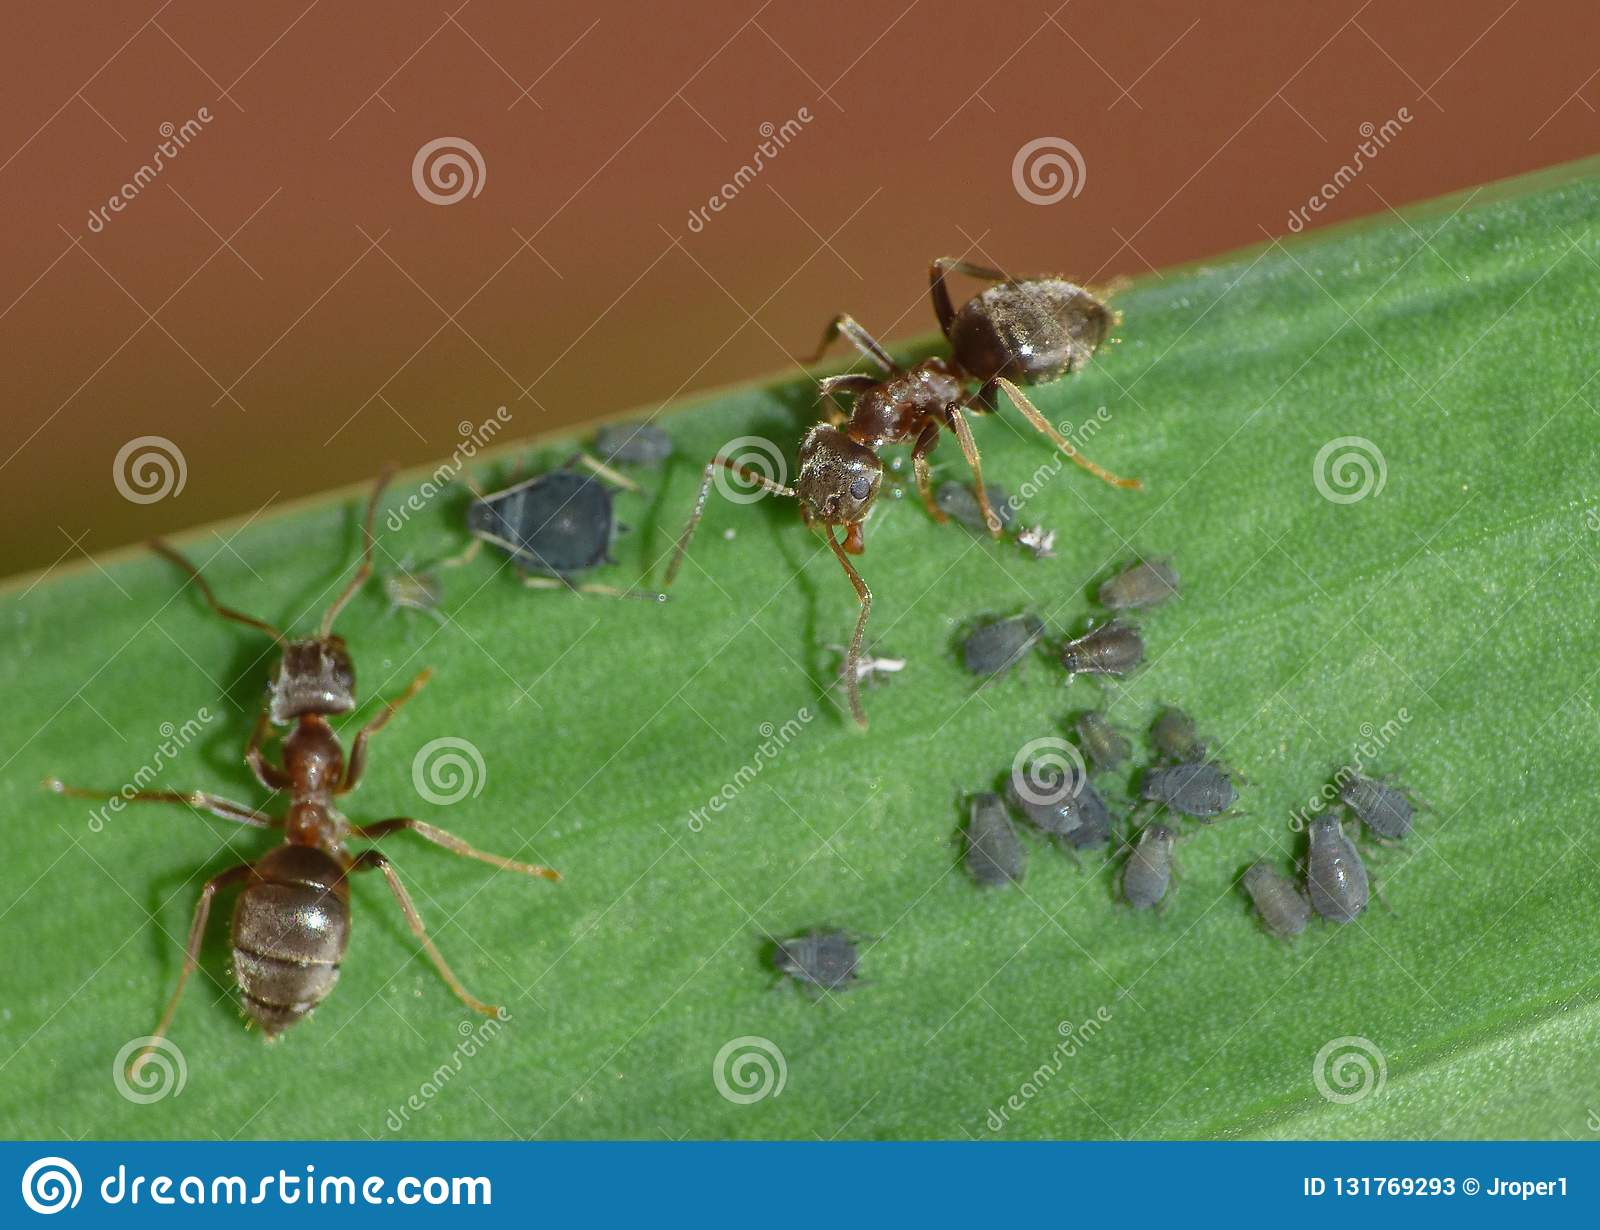 Macro Close Up Shot Of Ants With Aphids Working Together On A Leaf